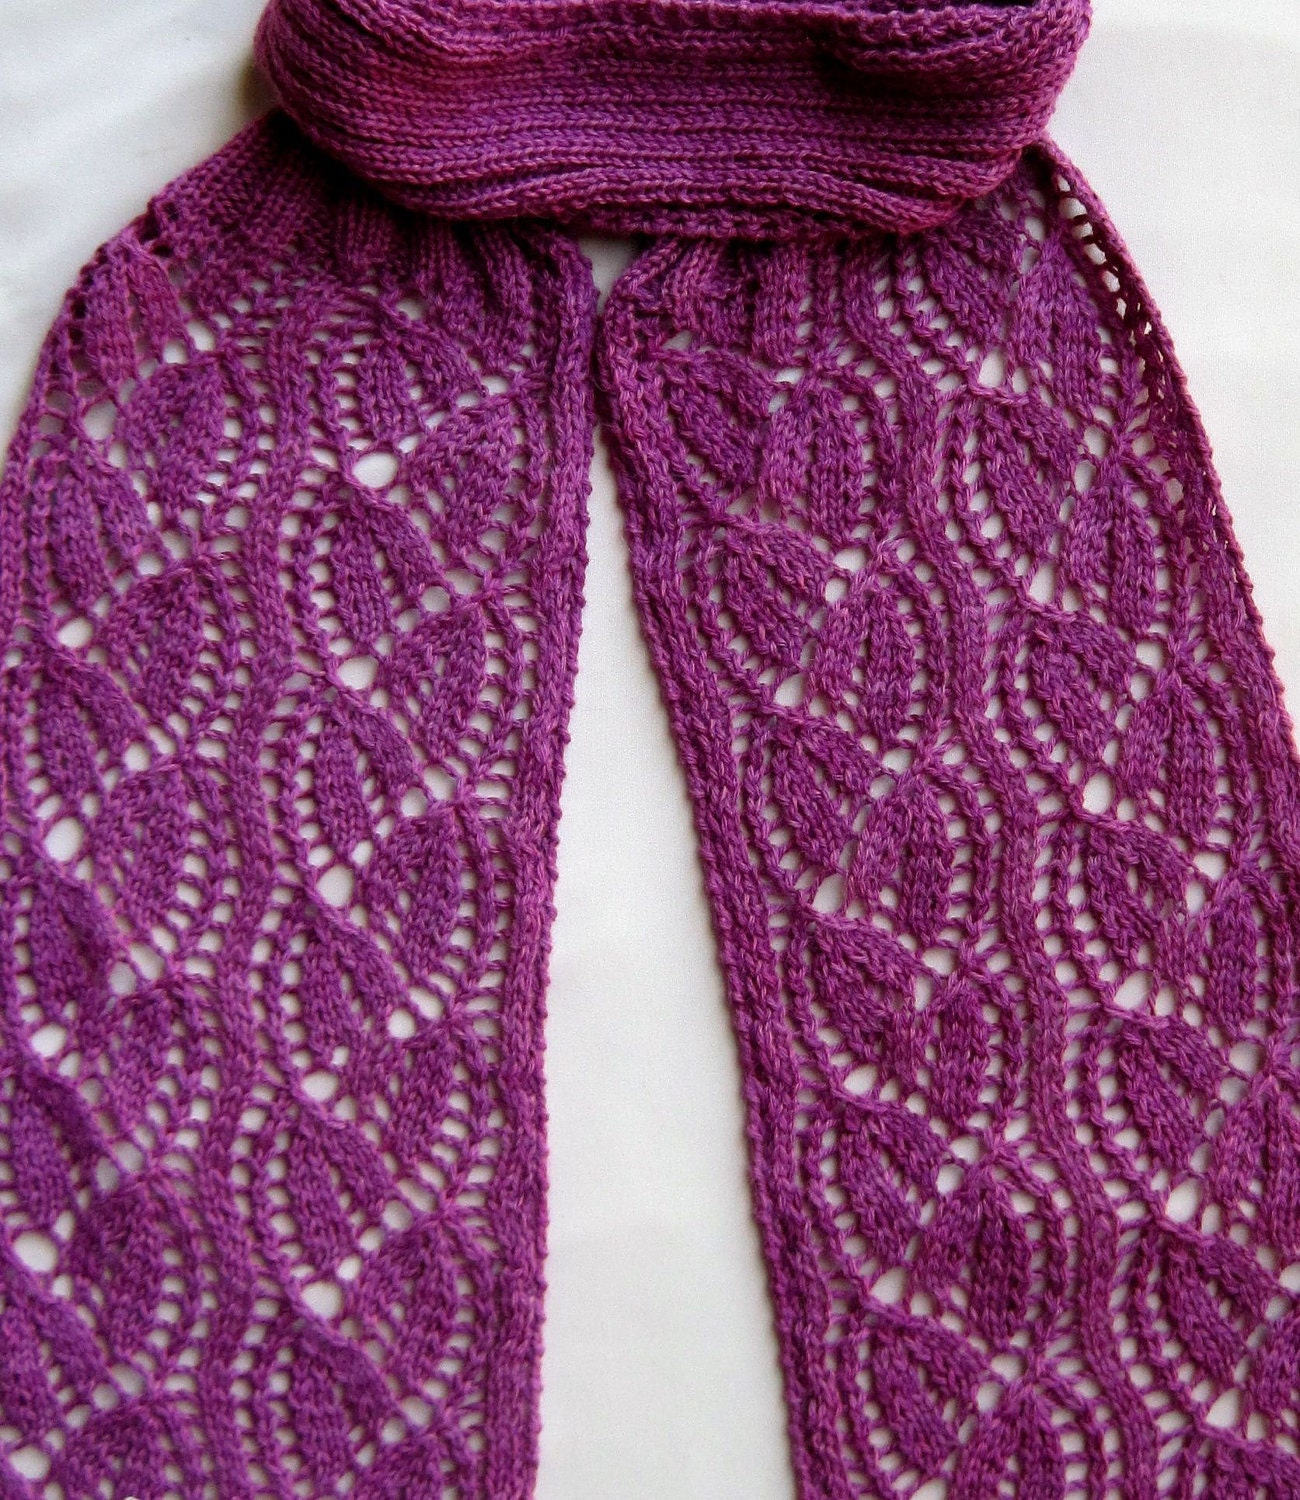 Lace Wool Knitting Patterns : Knit Scarf Pattern: Dayflower Lace Turtleneck Scarf Knitting